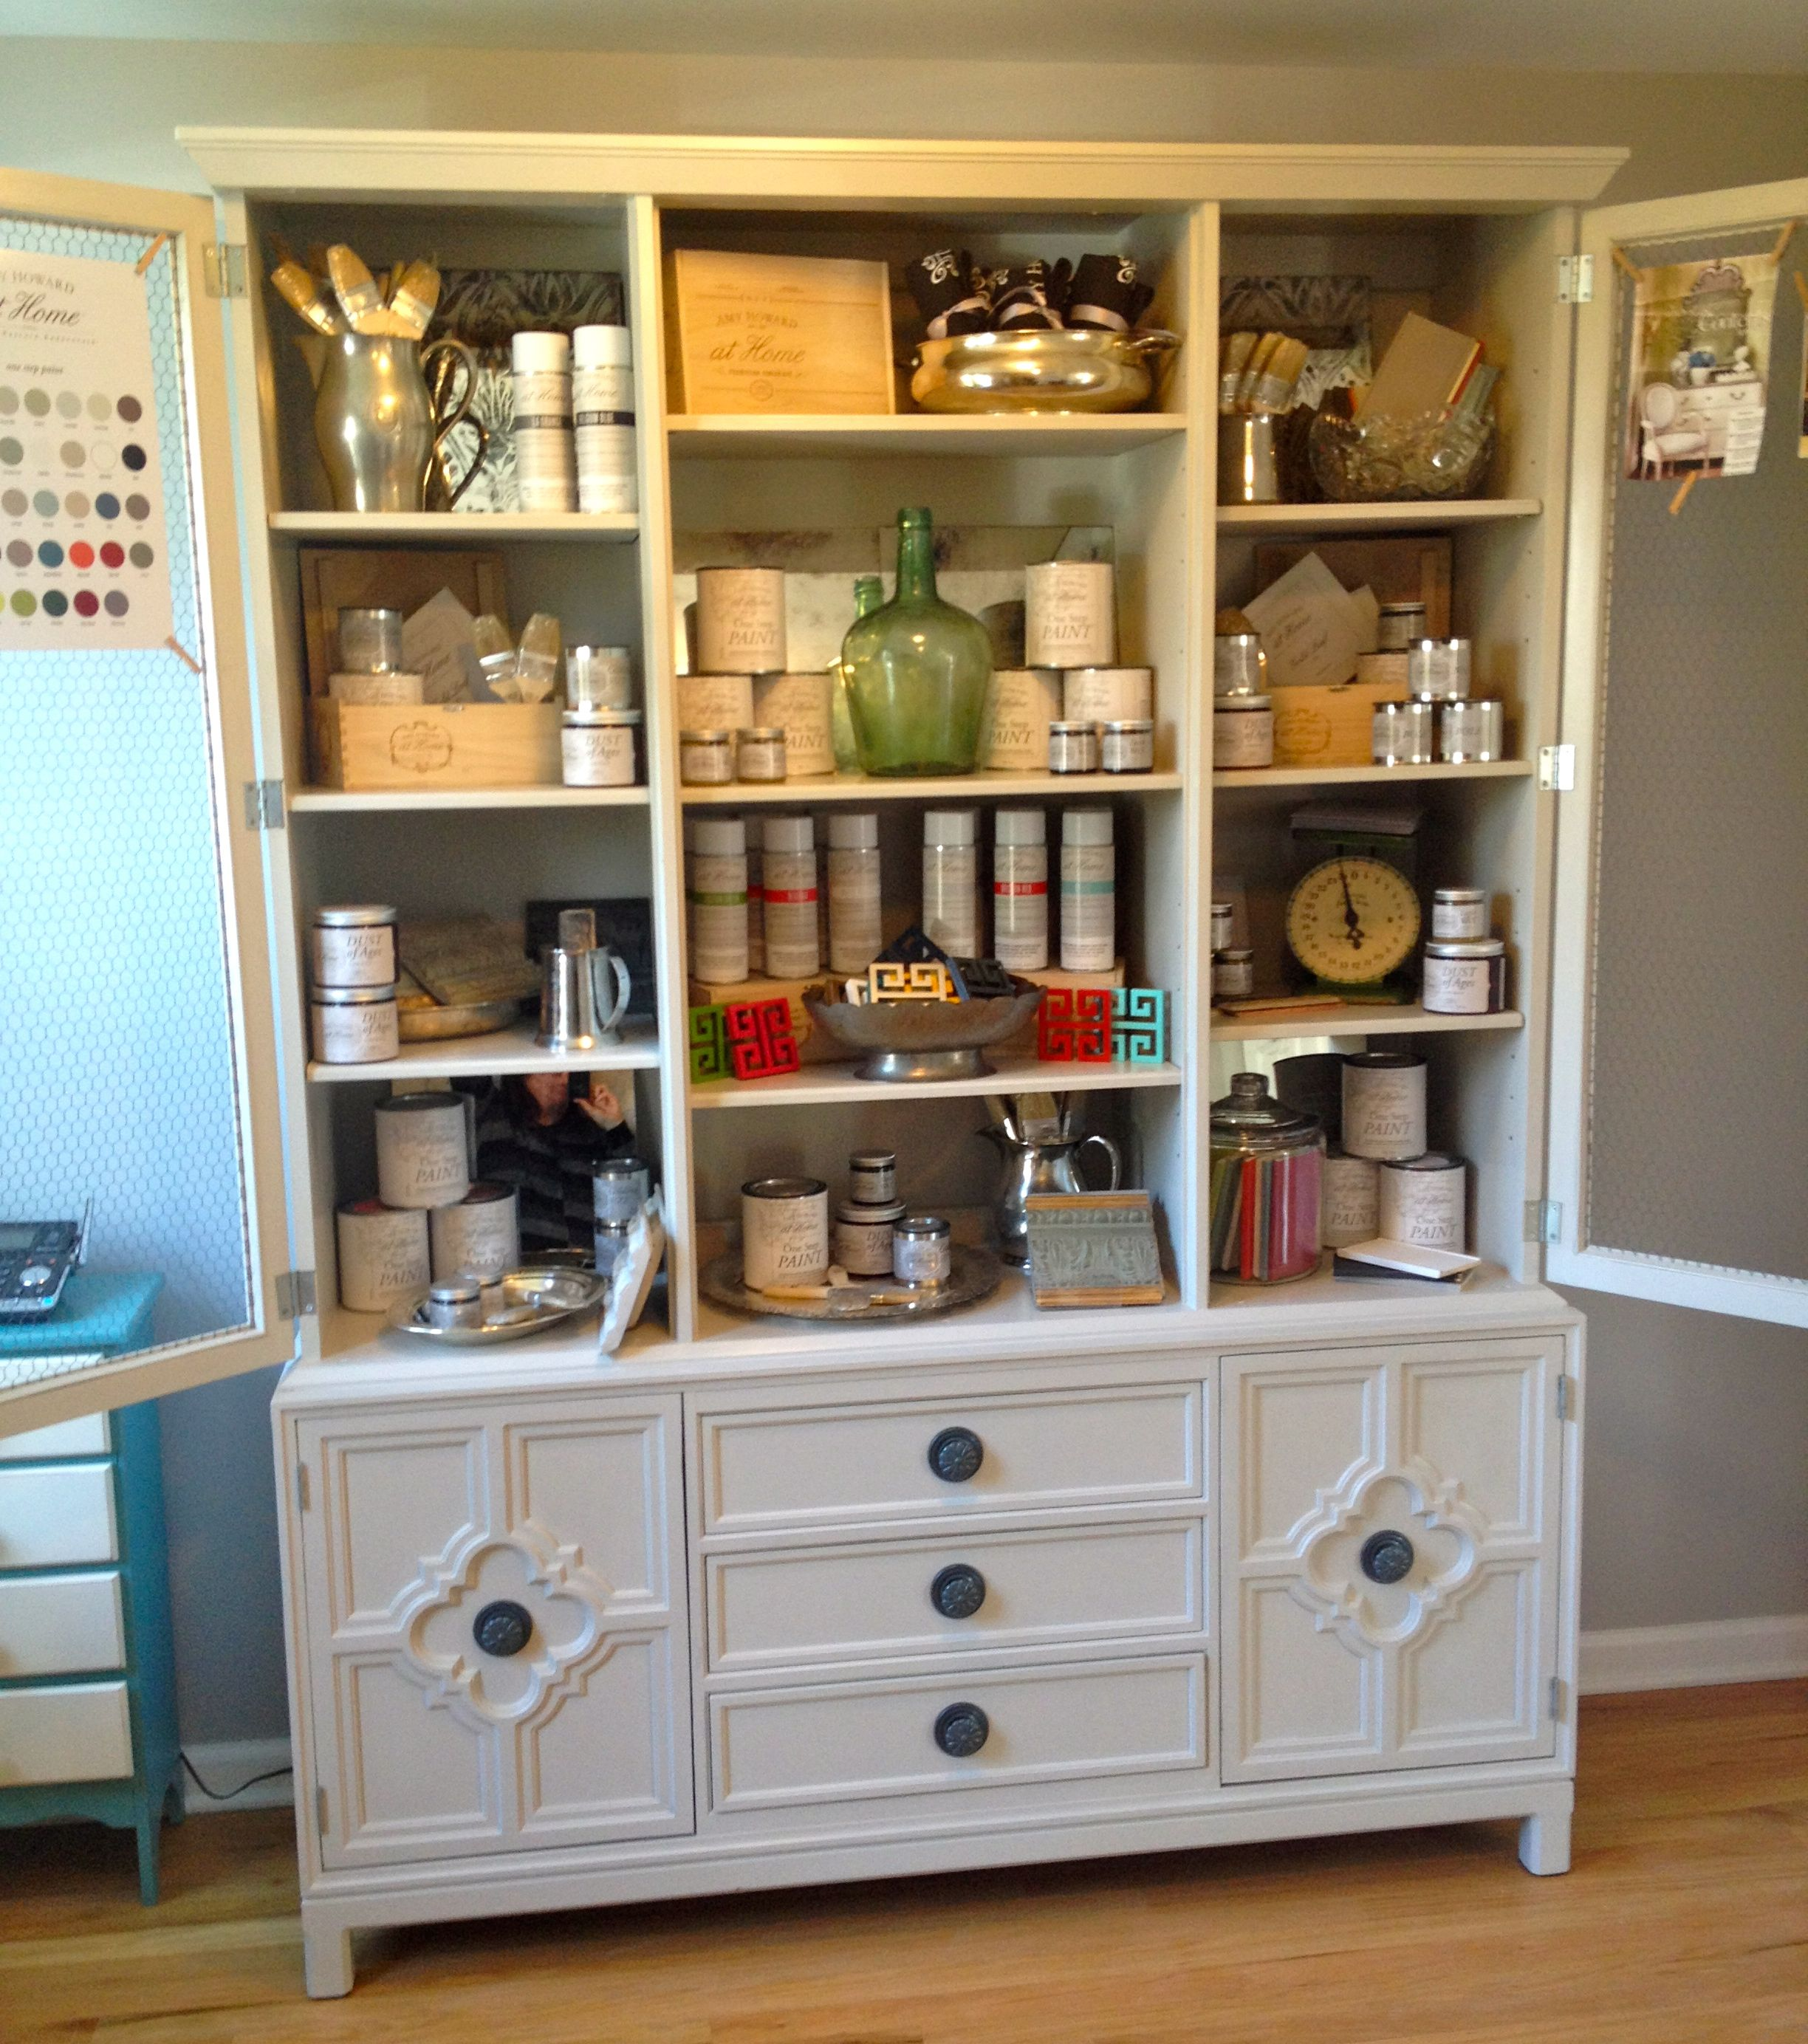 Amy Howard Display Painted With One Step Paint Home Kitchens Furniture Painted Furniture